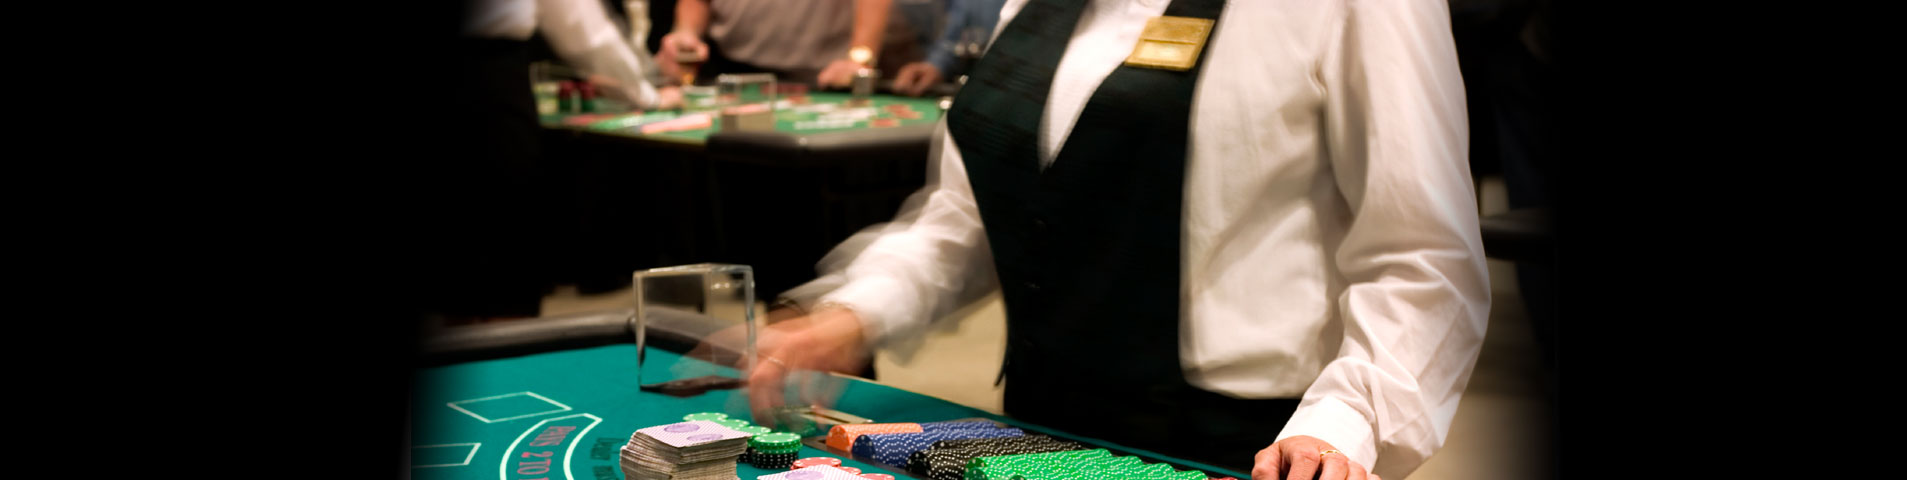 Snap Schedule scheduling software significantly reduces the time taken to create and maintain casino staff schedules.